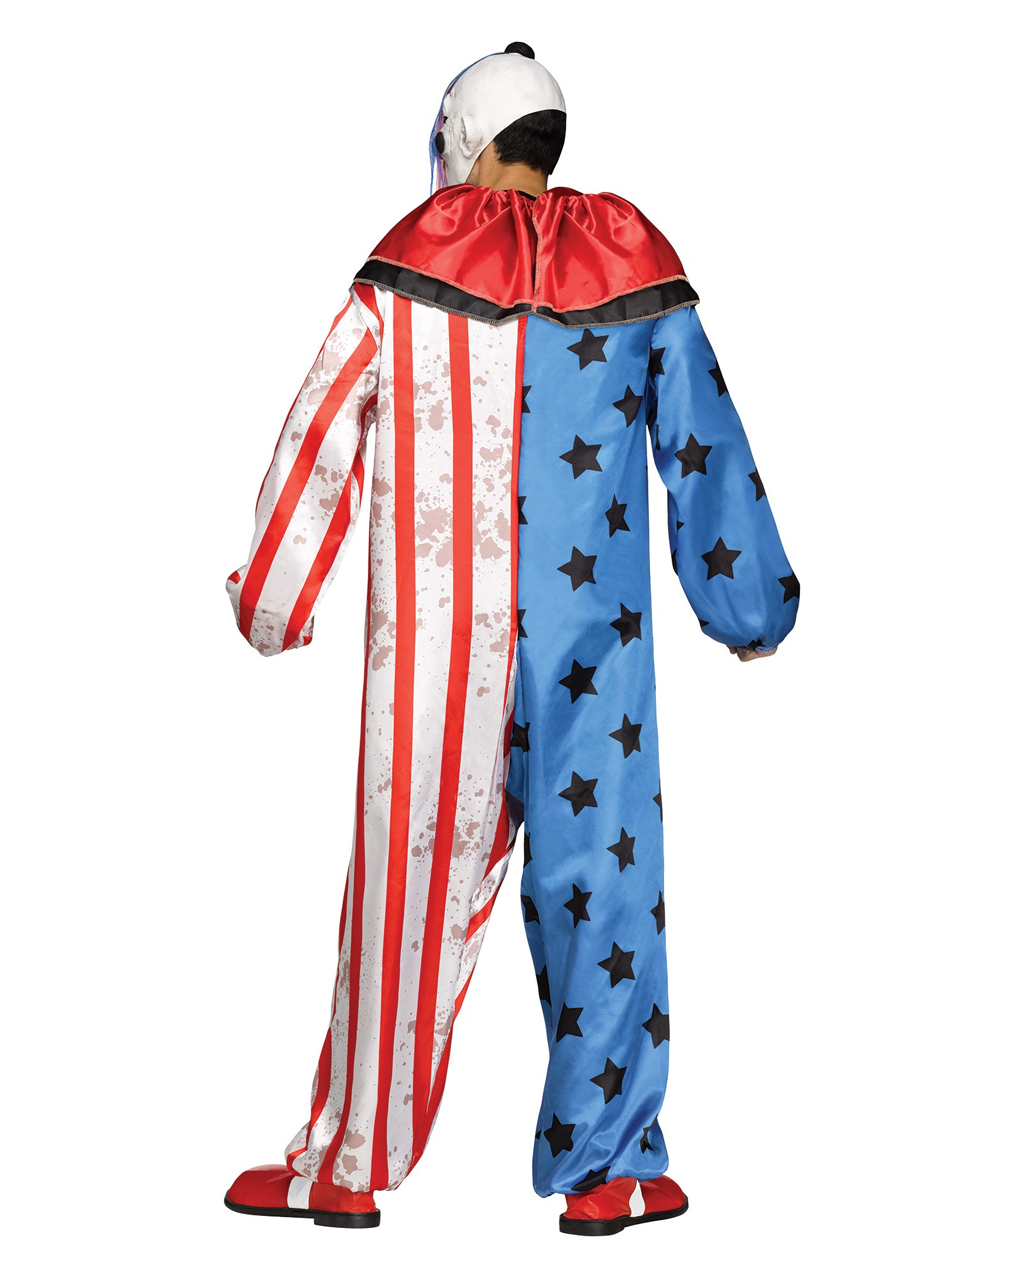 Horror circus clown costume with mask Horror circus clown costume with mask ...  sc 1 st  Horror-Shop.com & Horror circus clown costume with mask   Halloween clown disguise ...